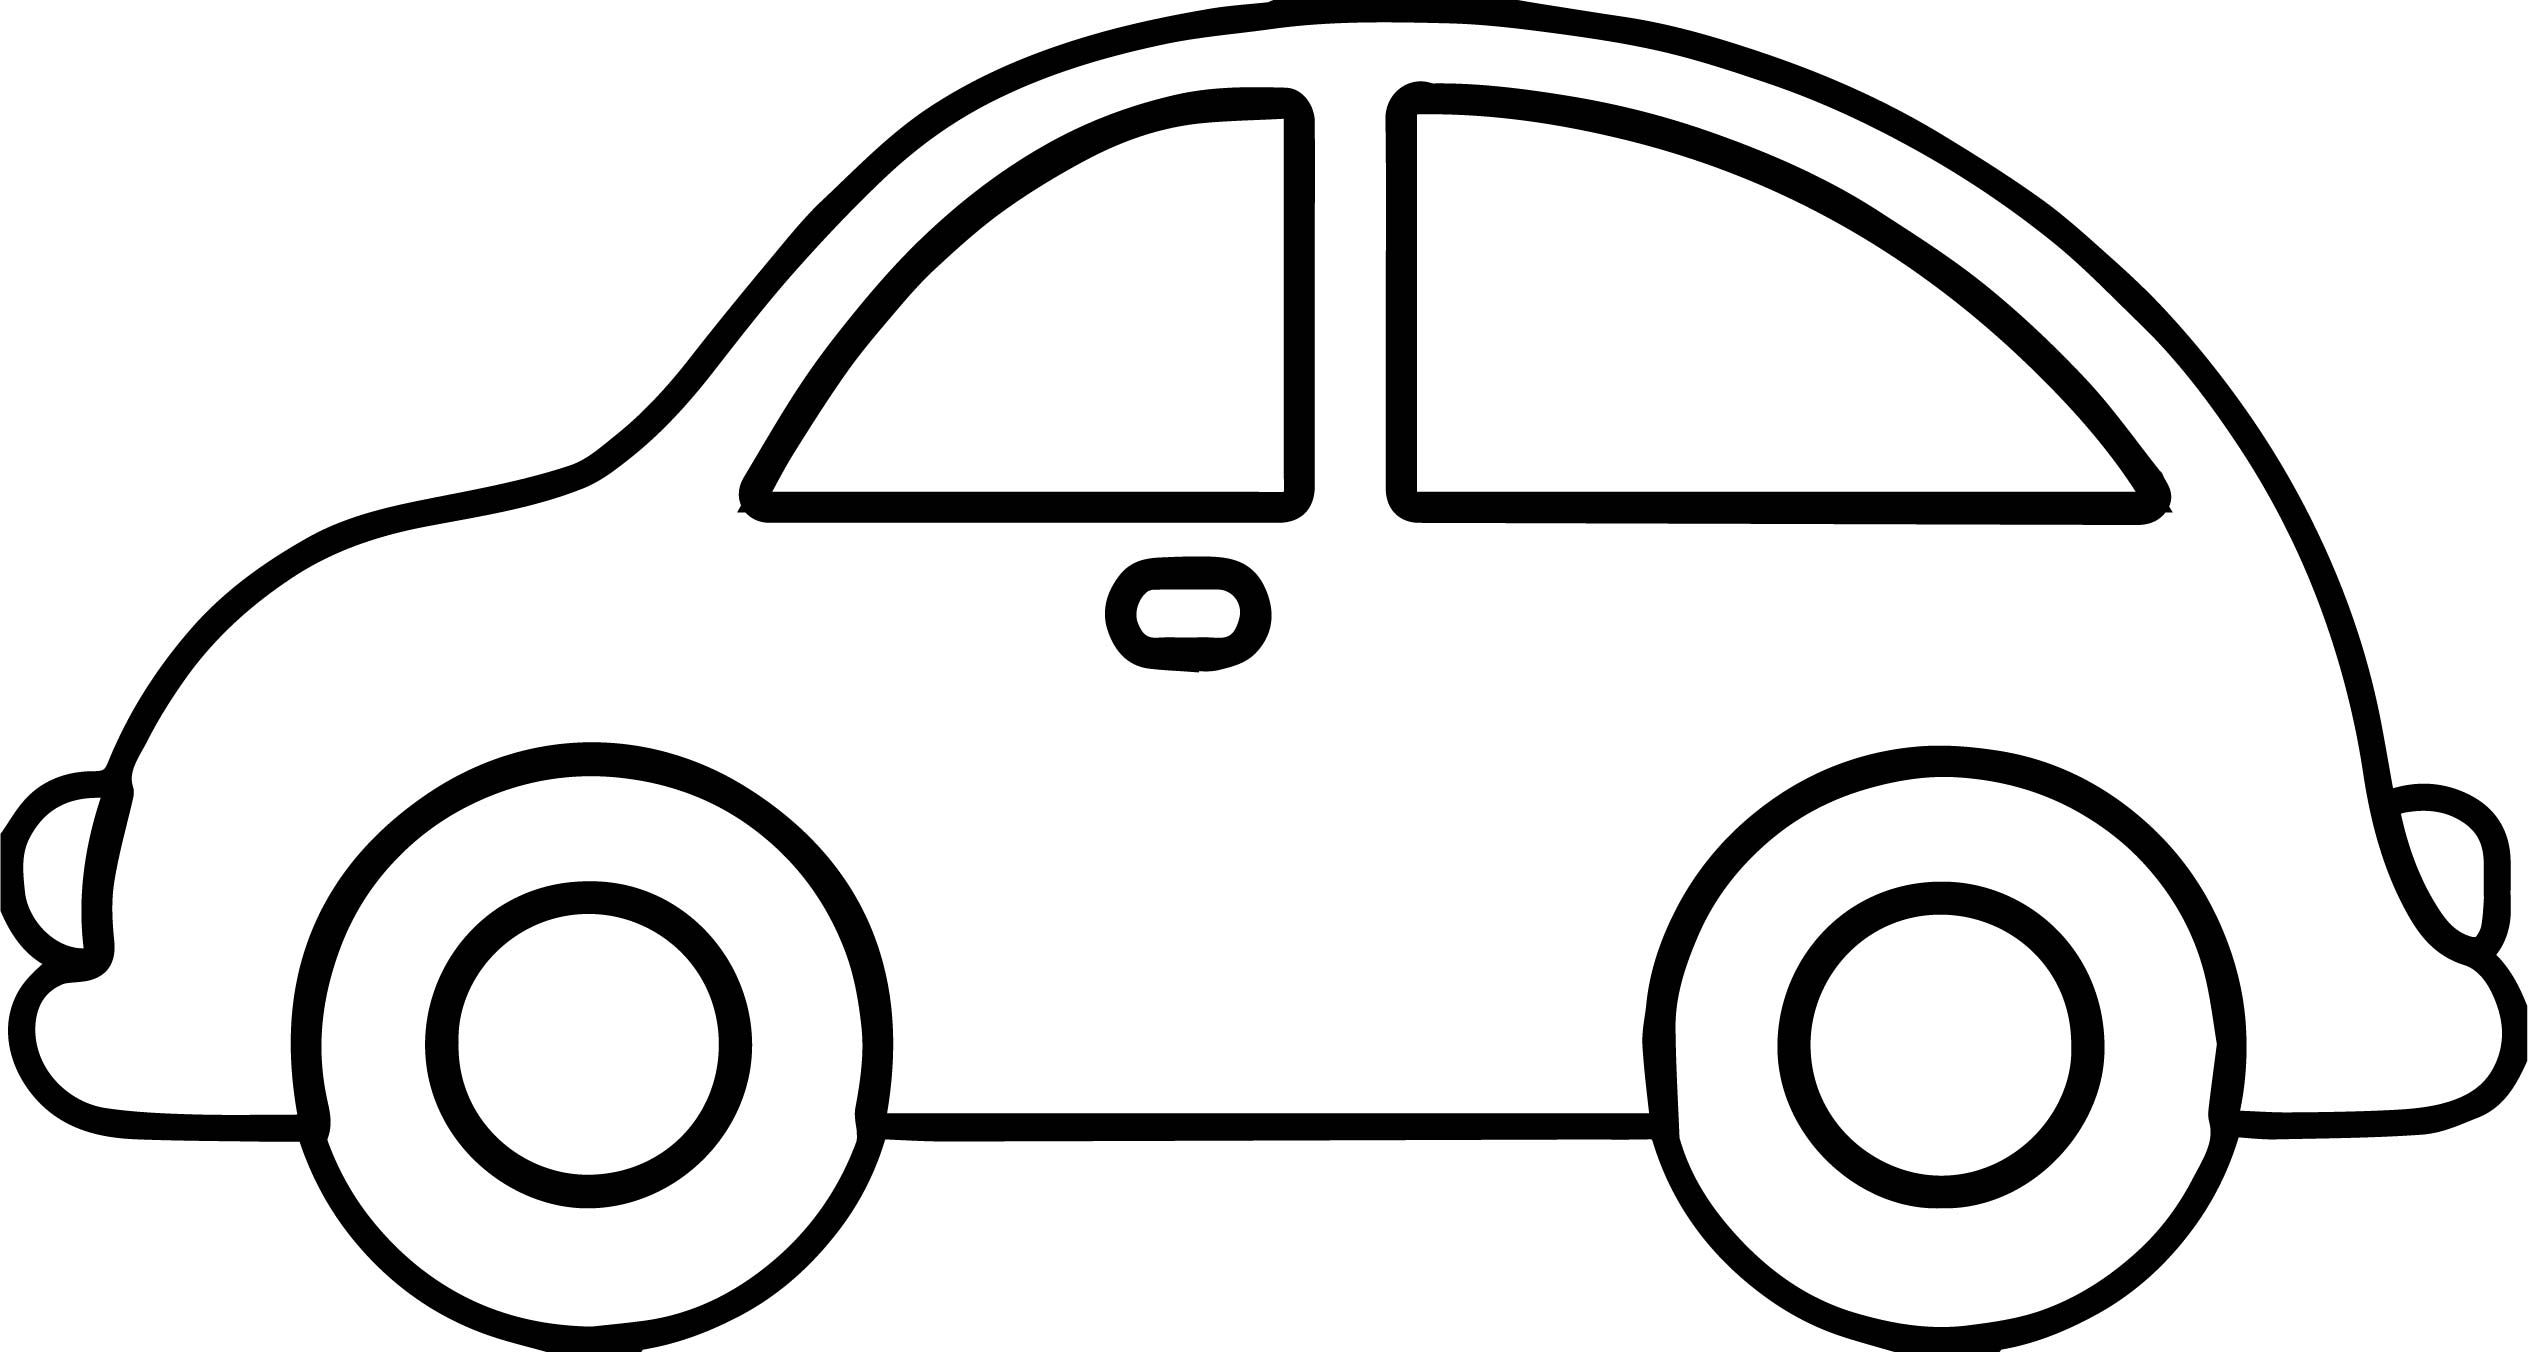 Cool Toy Car Basic Side View Coloring Page Cars Coloring Pages Easy Coloring Pages Race Car Coloring Pages